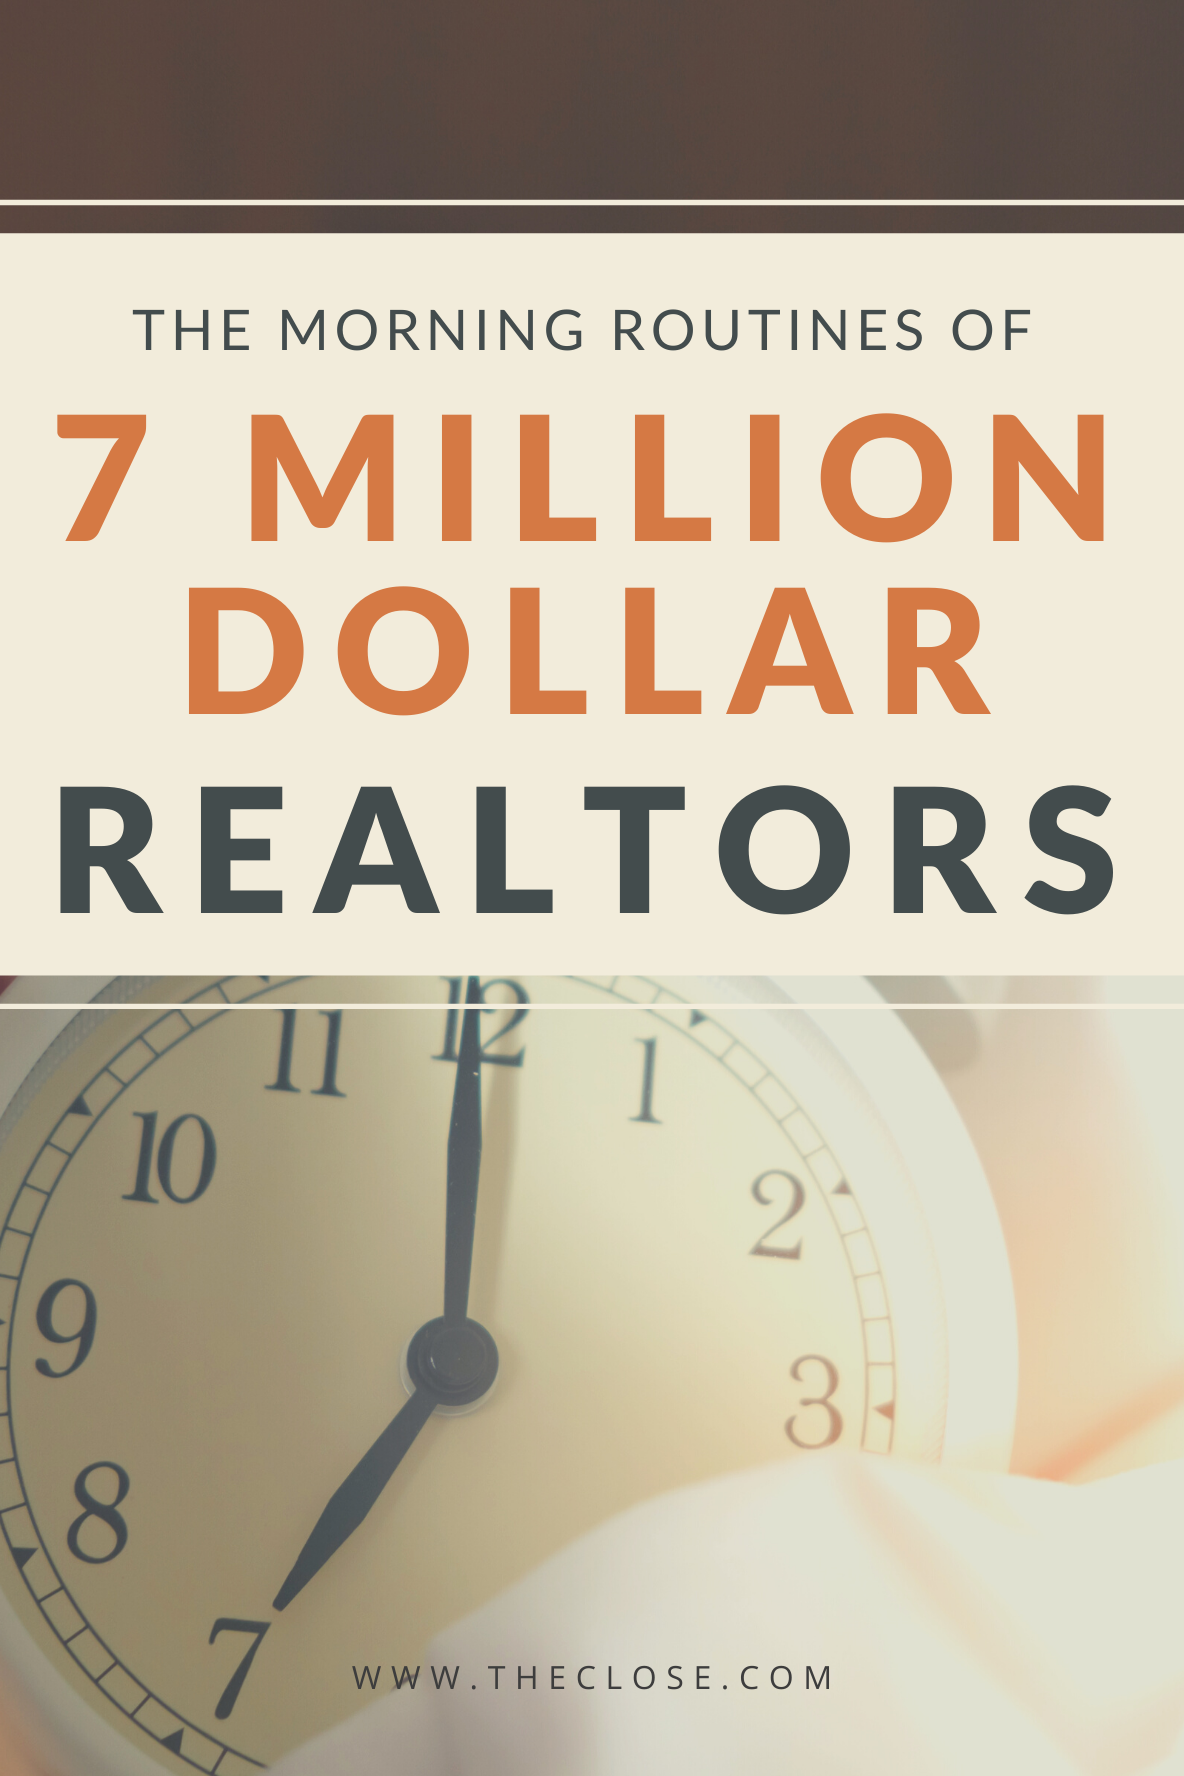 Psychologists agree that some morning routines can help you 10x your GCI. Find out what habits to adopt to grow your real estate business. #realestate #realtor #beforework #productive #list #theclose